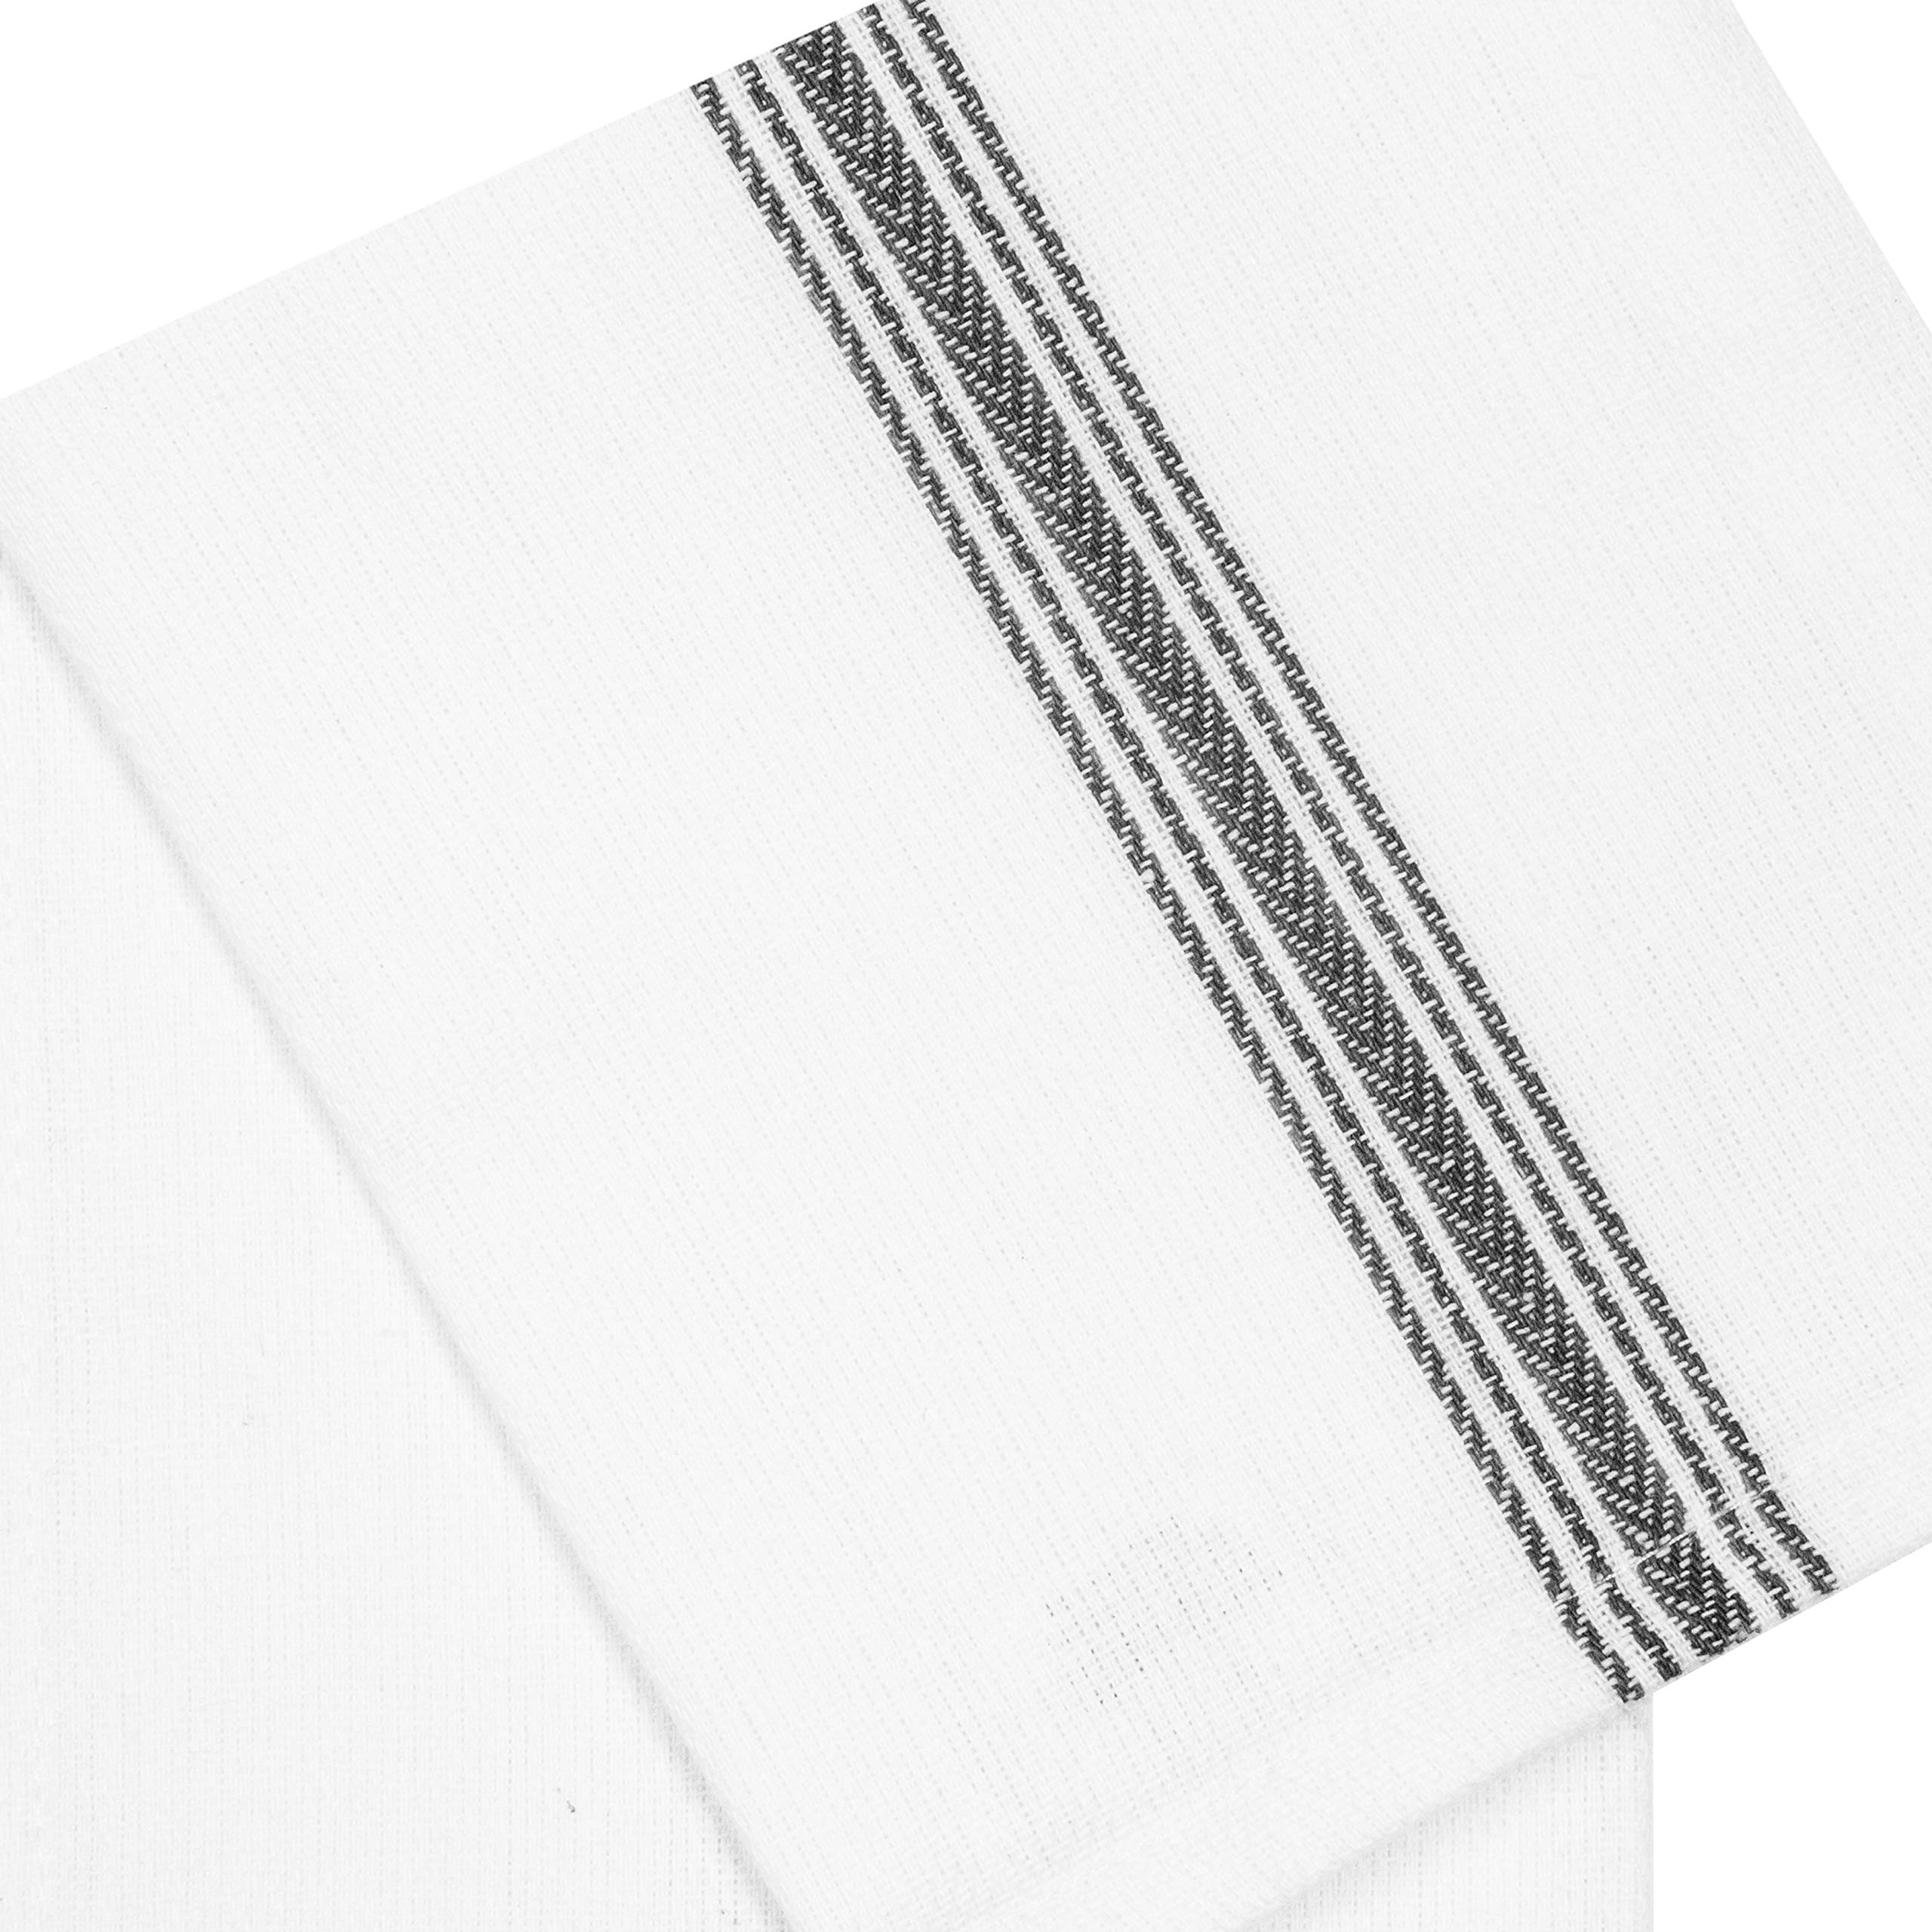 Cotton Craft - Scandia Stripe Charcoal & White 12 Pack Superior Professional Grade Kitchen Dish Tea Towels - May Also be Used as Napkins - 16x28 30 Ounces Pure 100% Cotton, Low Lint, Sturdy Weave by Cotton Craft (Image #2)